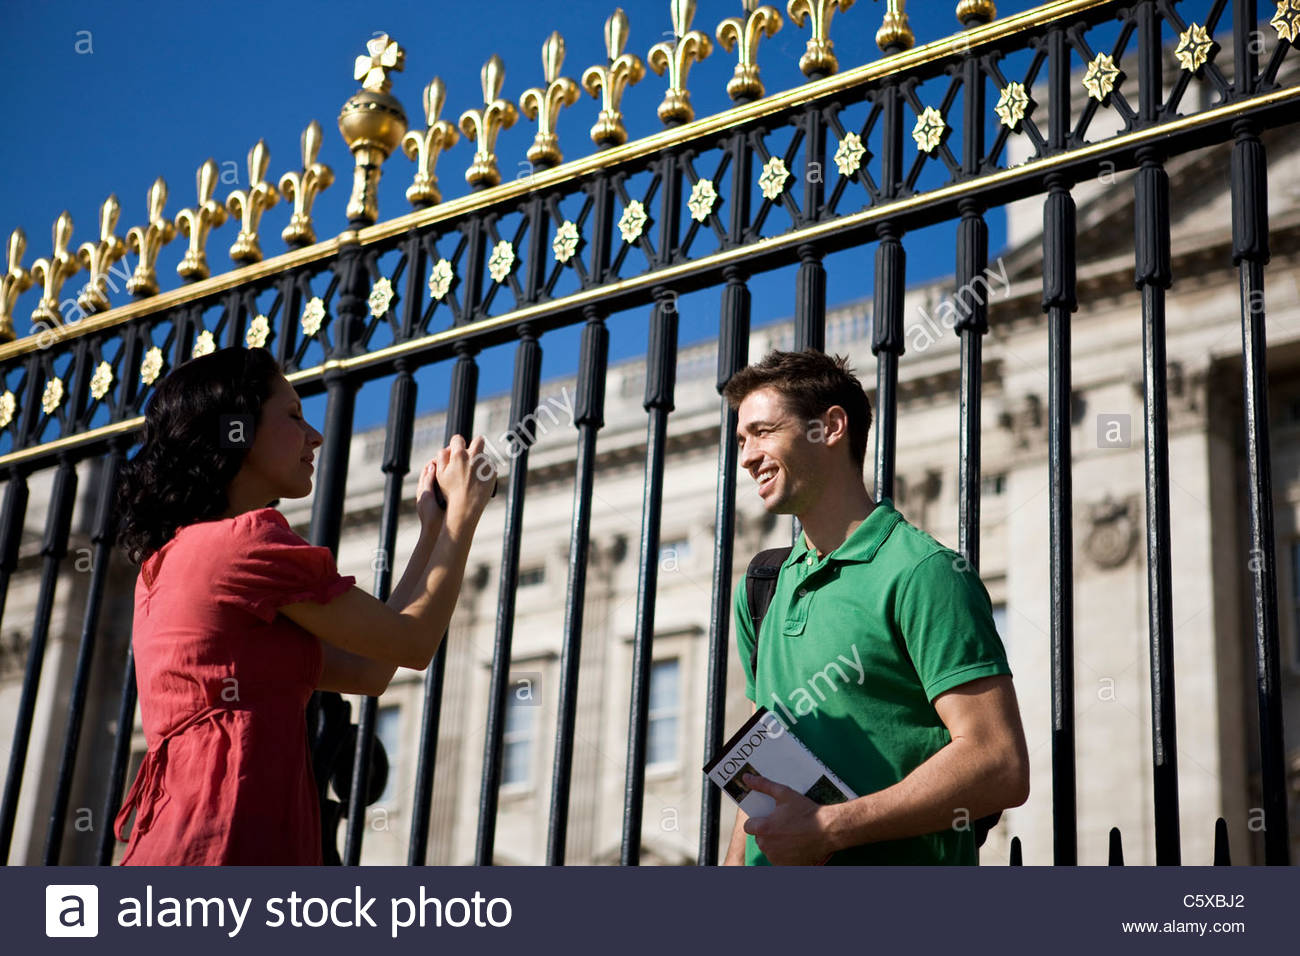 A young woman taking a picture of her boyfriend, in front of Buckingham Palace - Stock Image